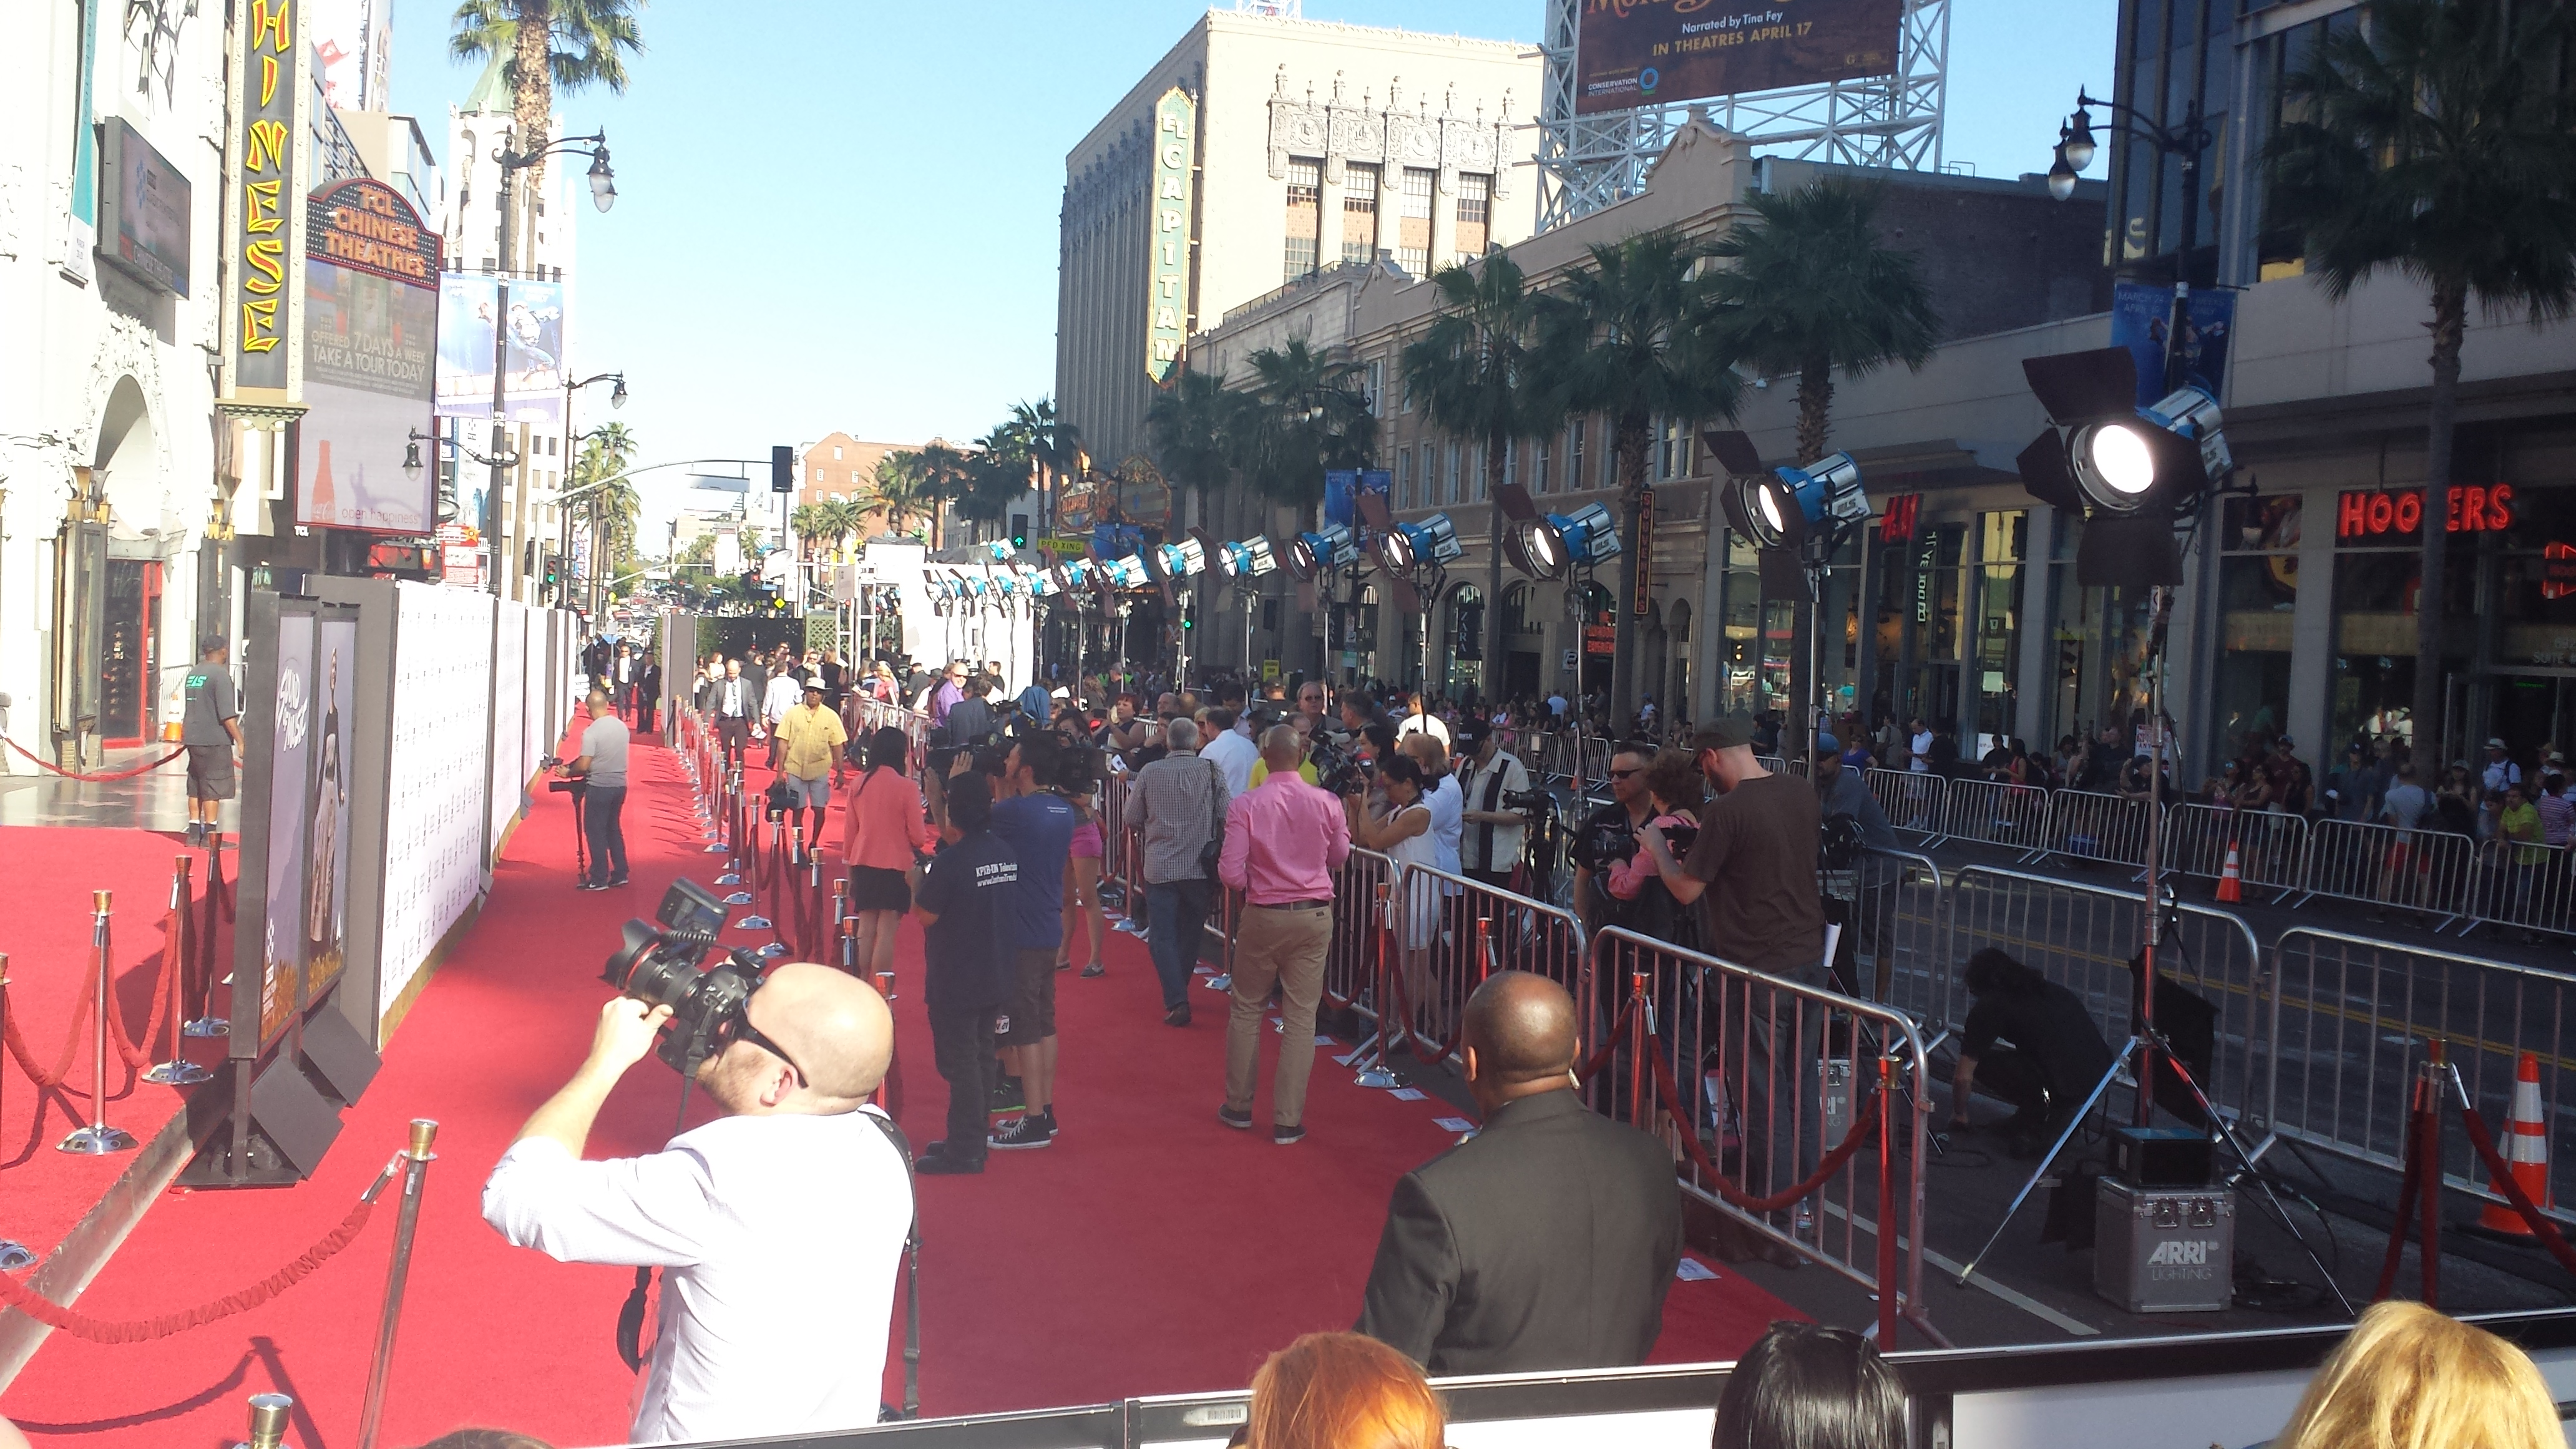 A view of the red carpet from the bleachers.